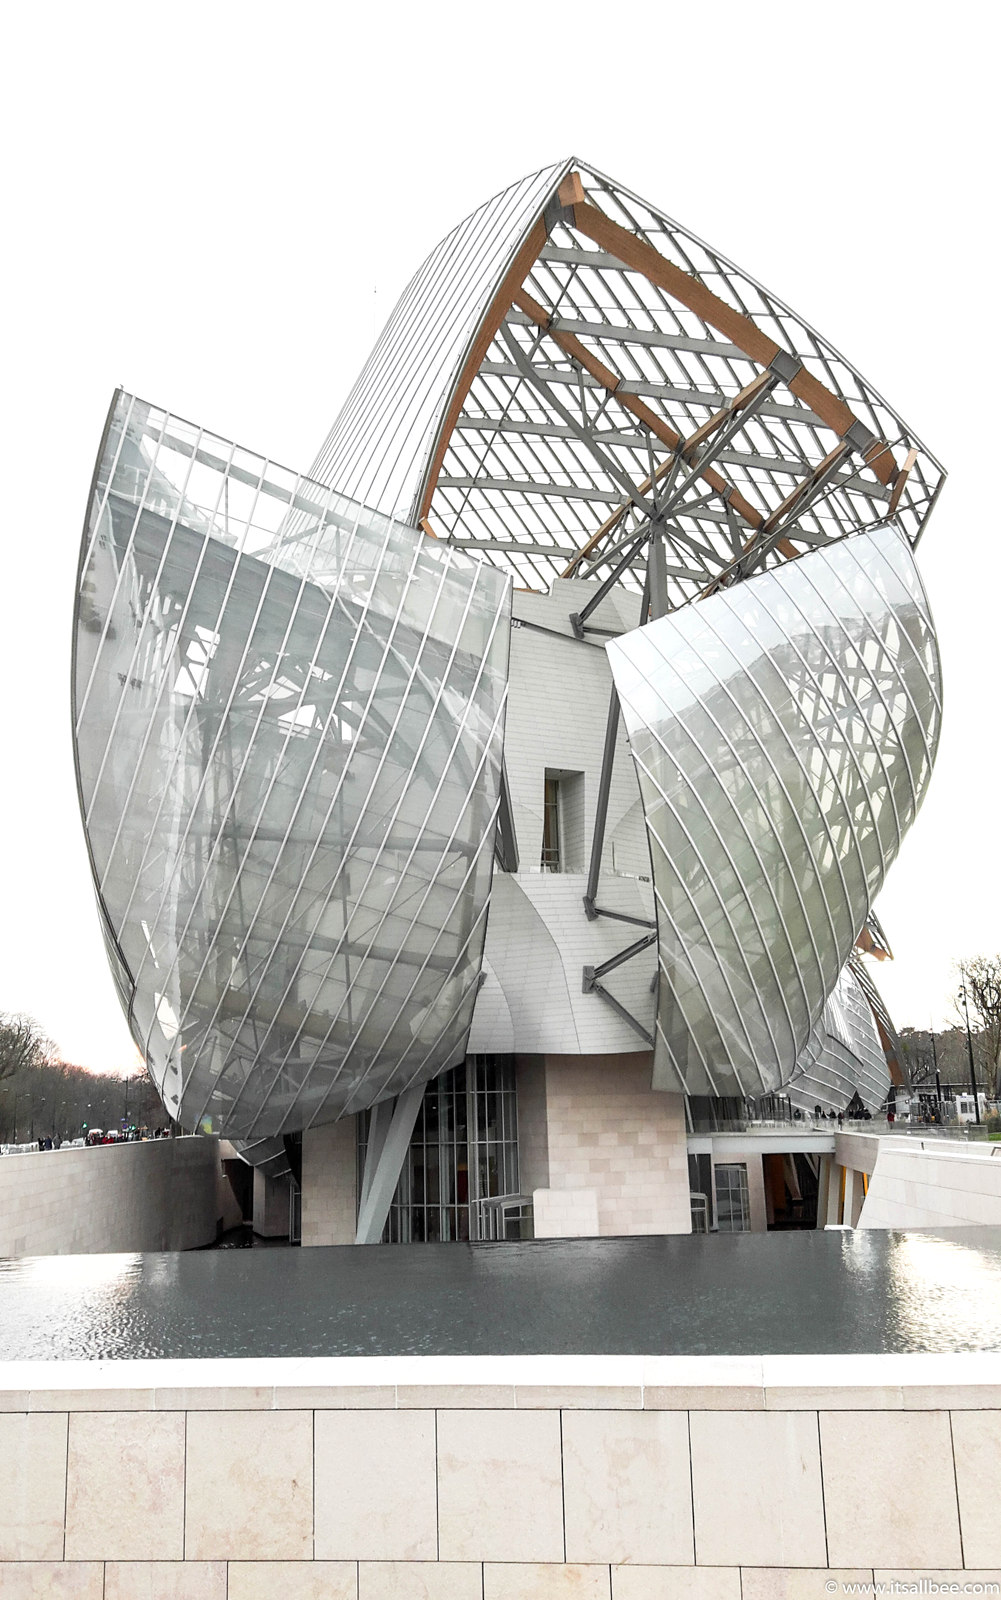 Foundation Louis Vuitton In Paris - Photo by Bianca - www.itsallbee.com